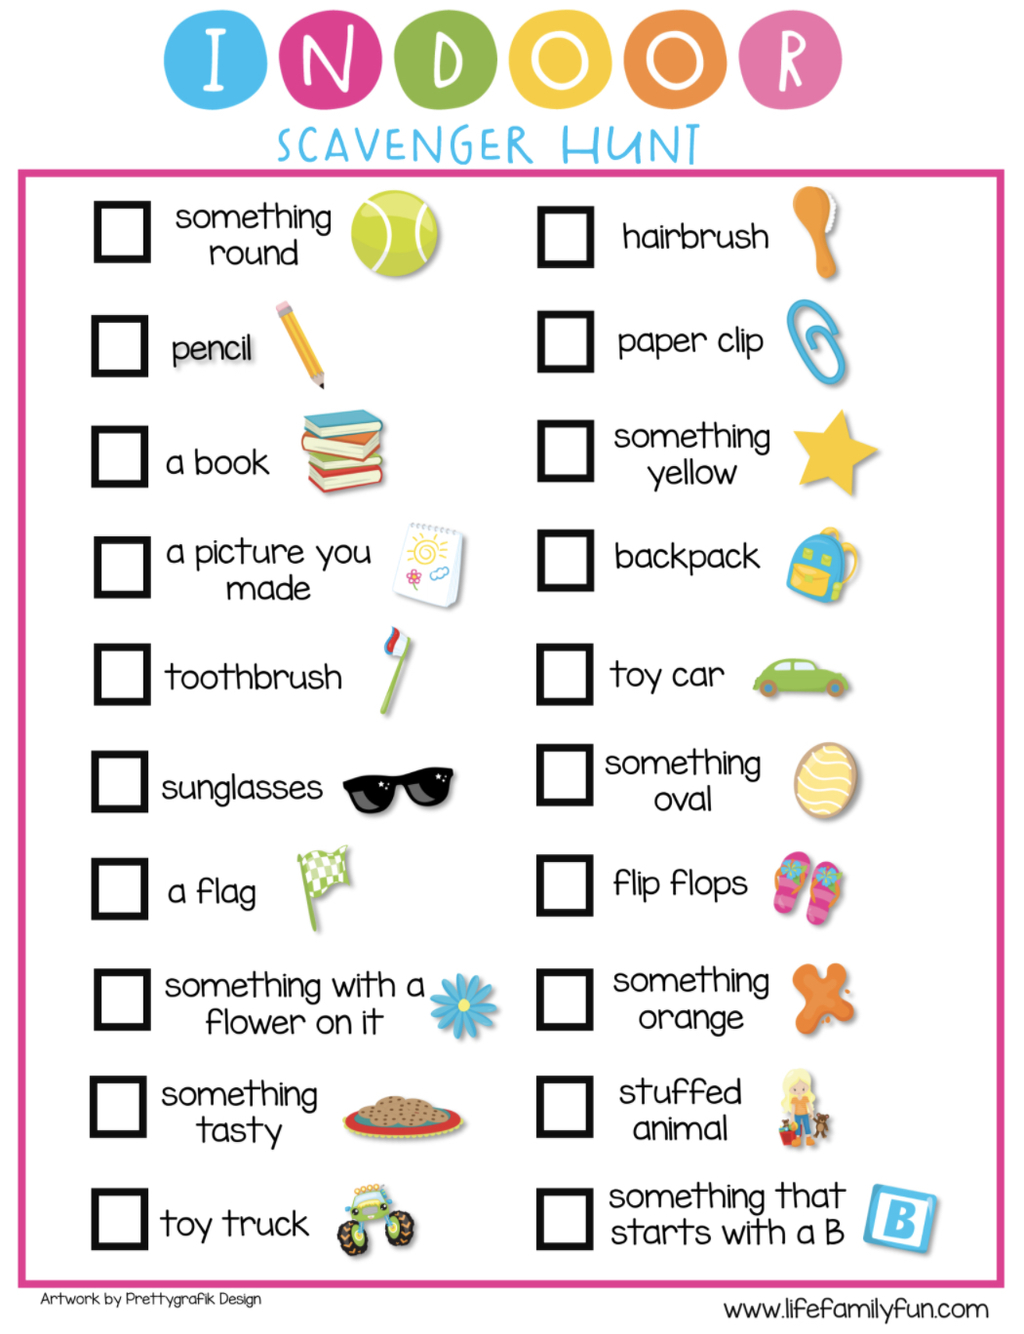 50 Fun Indoor Activities For Kids When They Are Stuck At Home